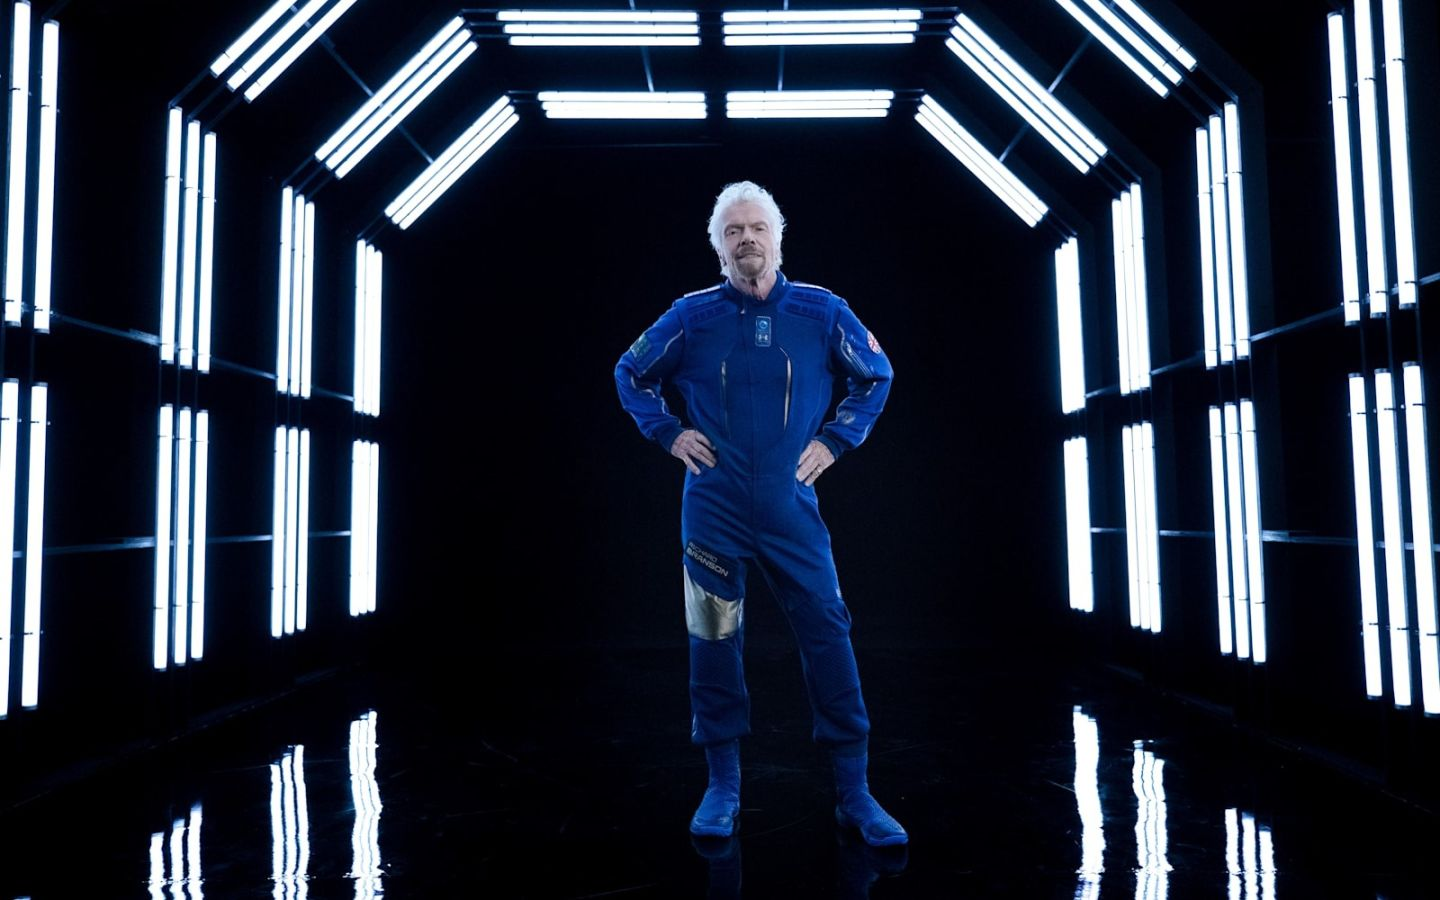 Richard Branson wears the Virgin Galactic spacesuit